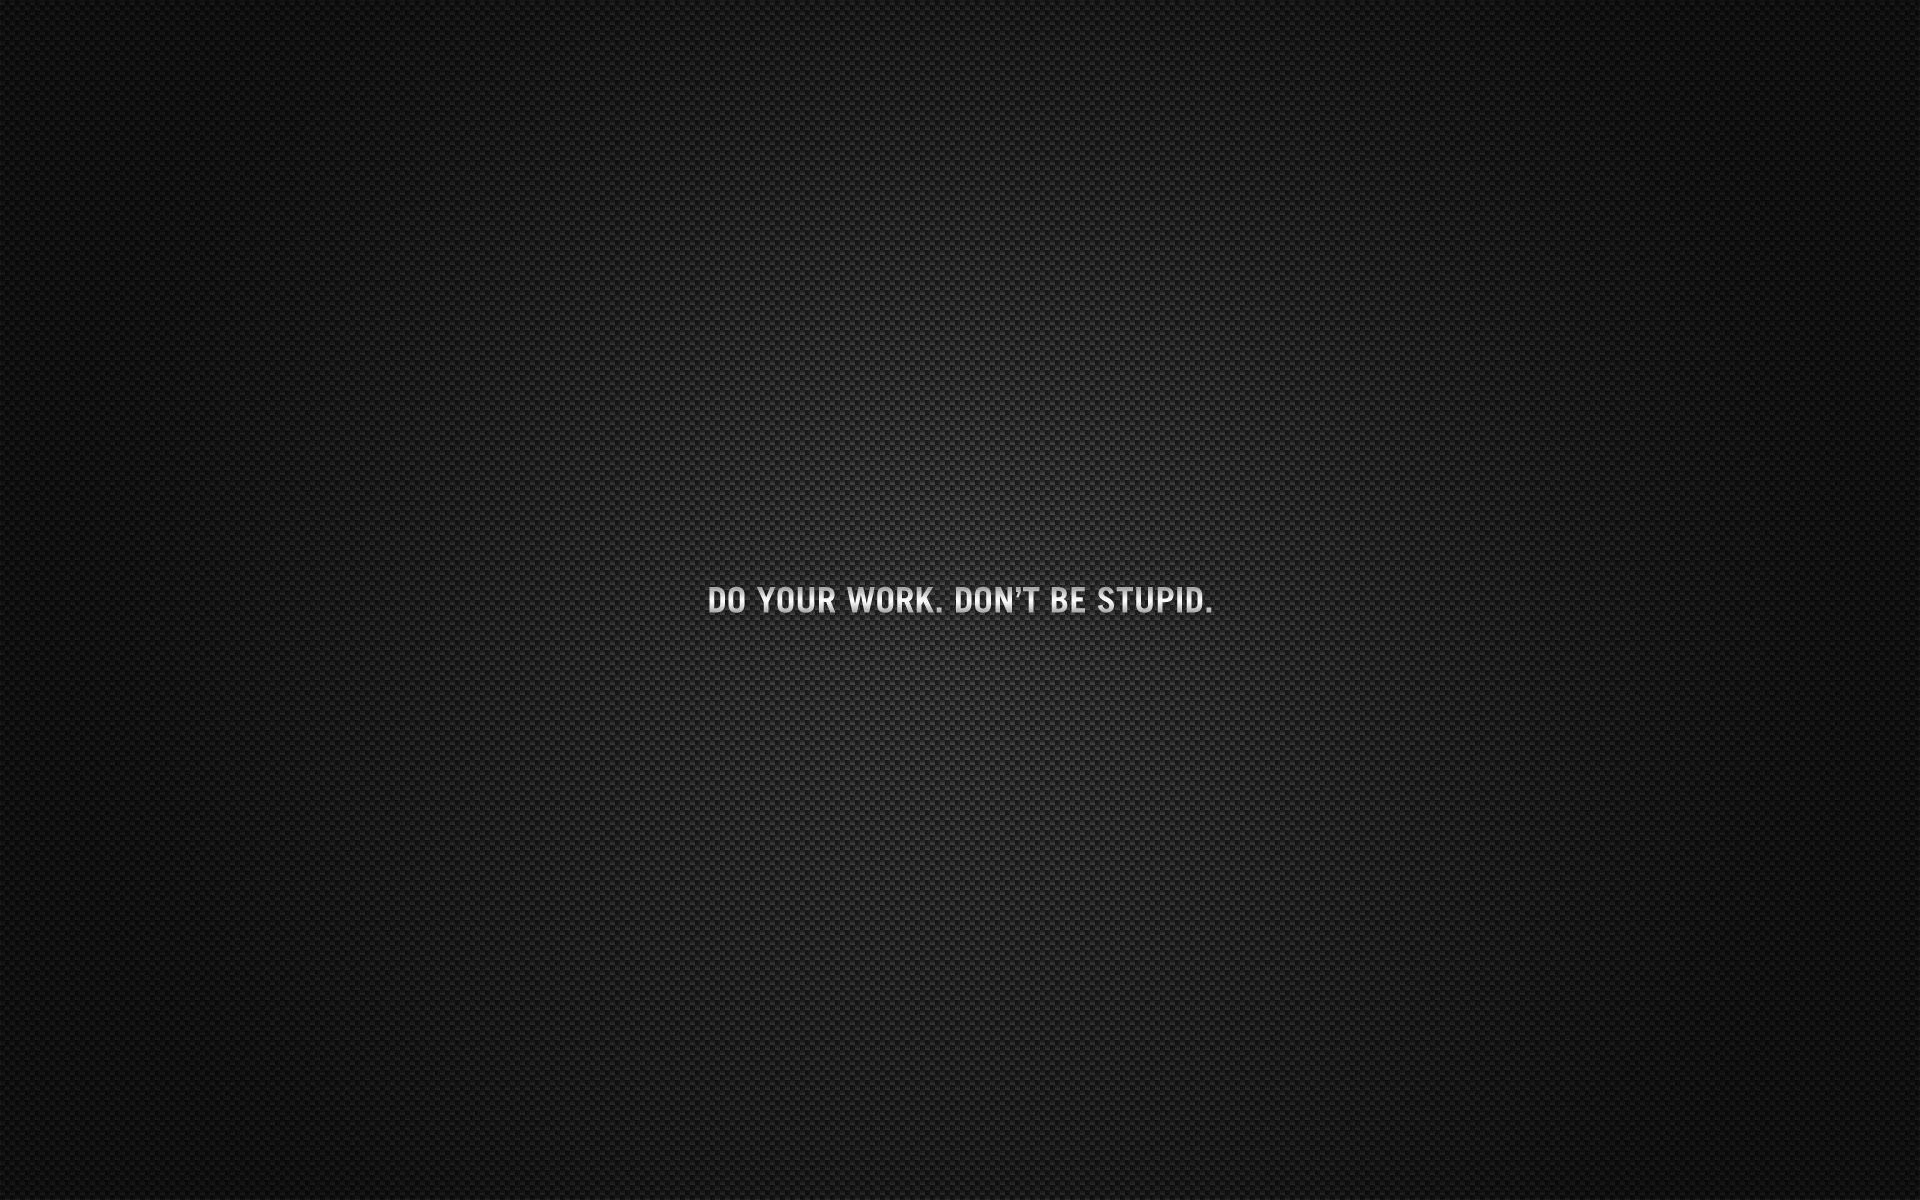 Funny Stupid Wallpapers 69 Background Pictures